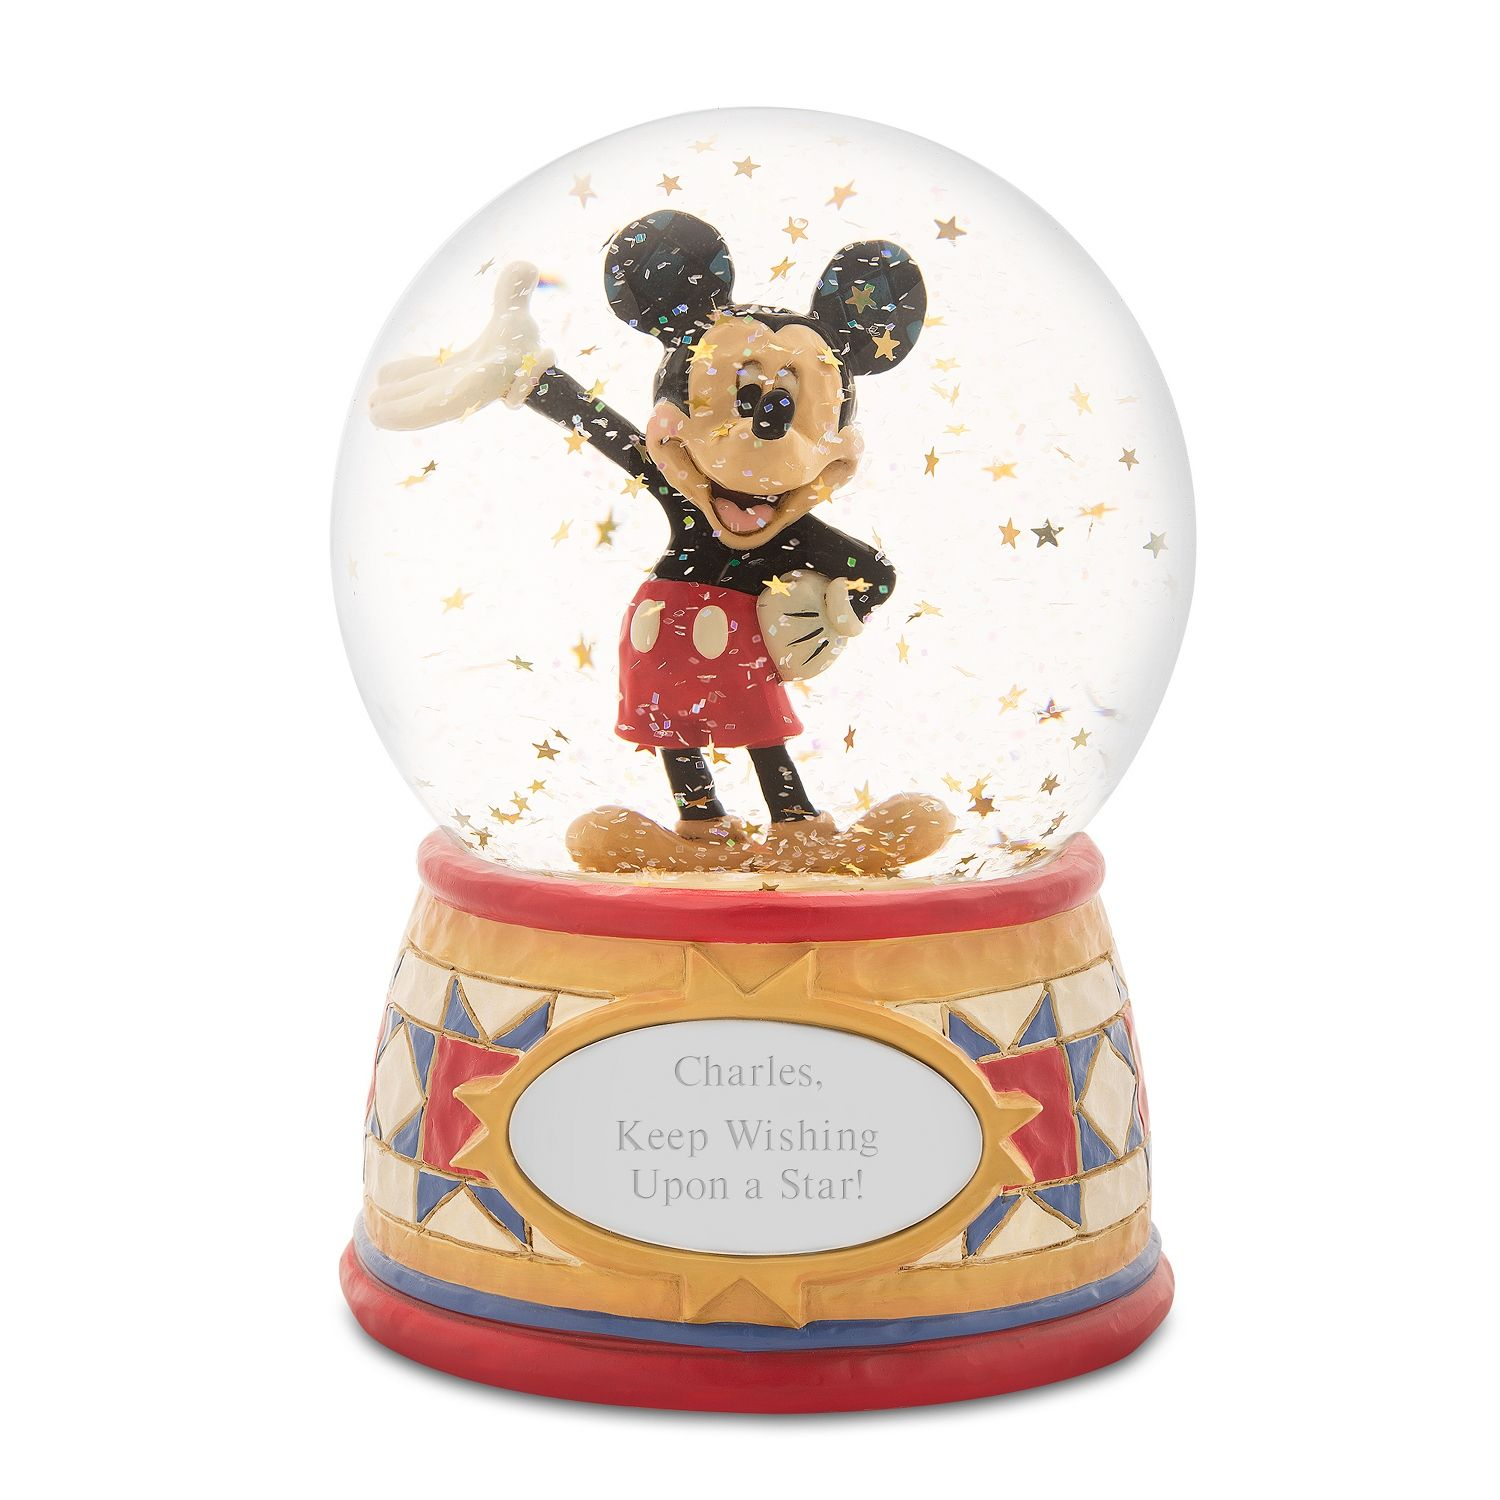 Jim Shore Disney Traditions Mickey Mouse Snow Globe Disney Traditions Snow Globes Mickey Mouse